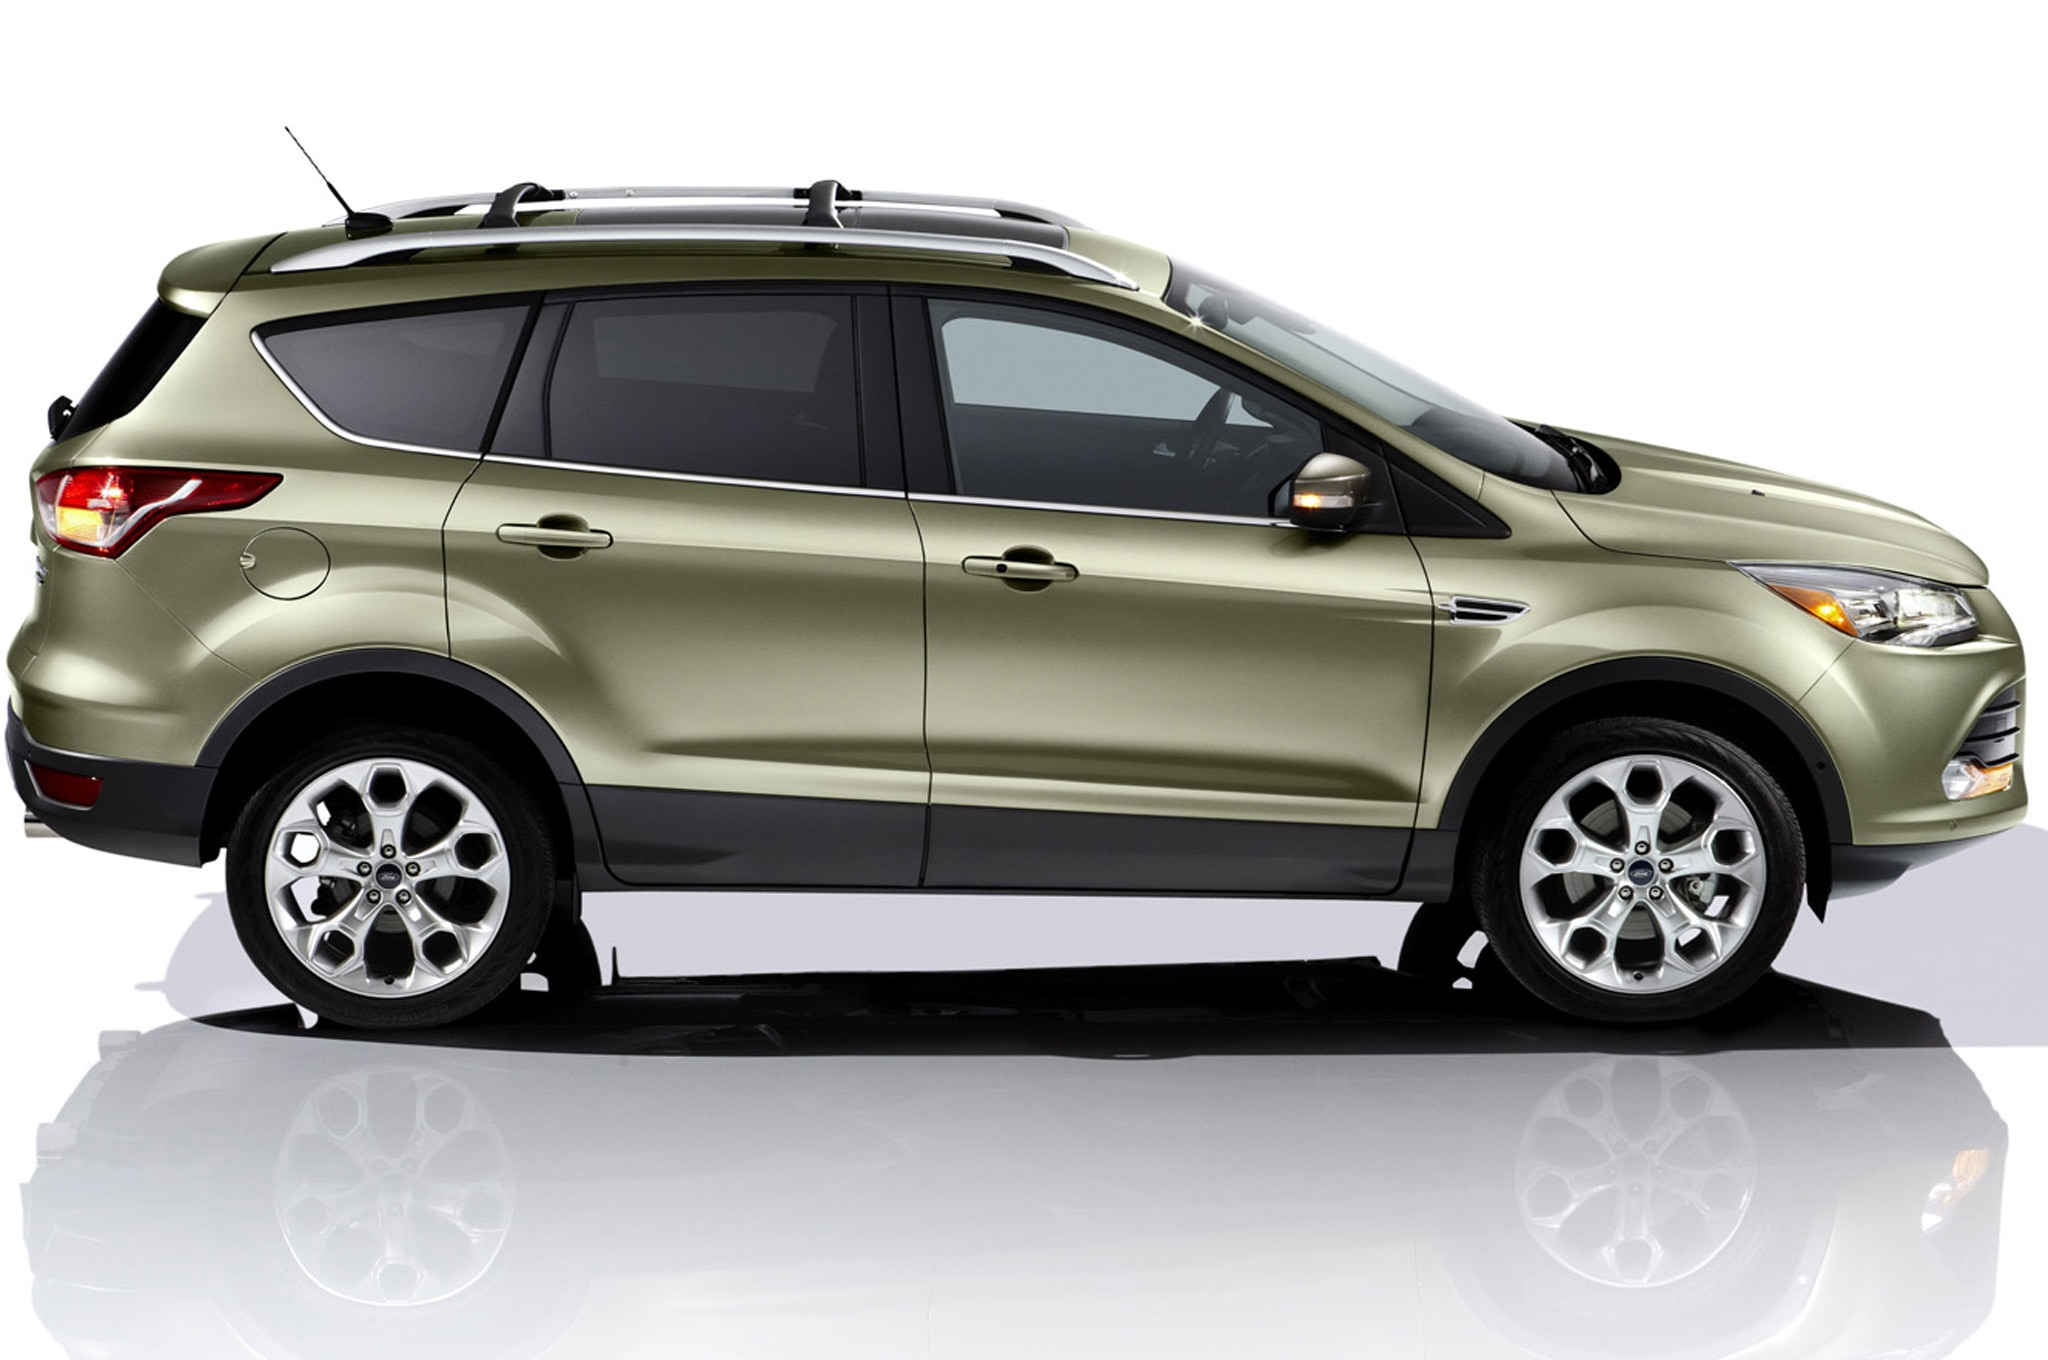 Ford Escape Exterior Colors 2017 2018 2019 Ford Price Release Date Reviews